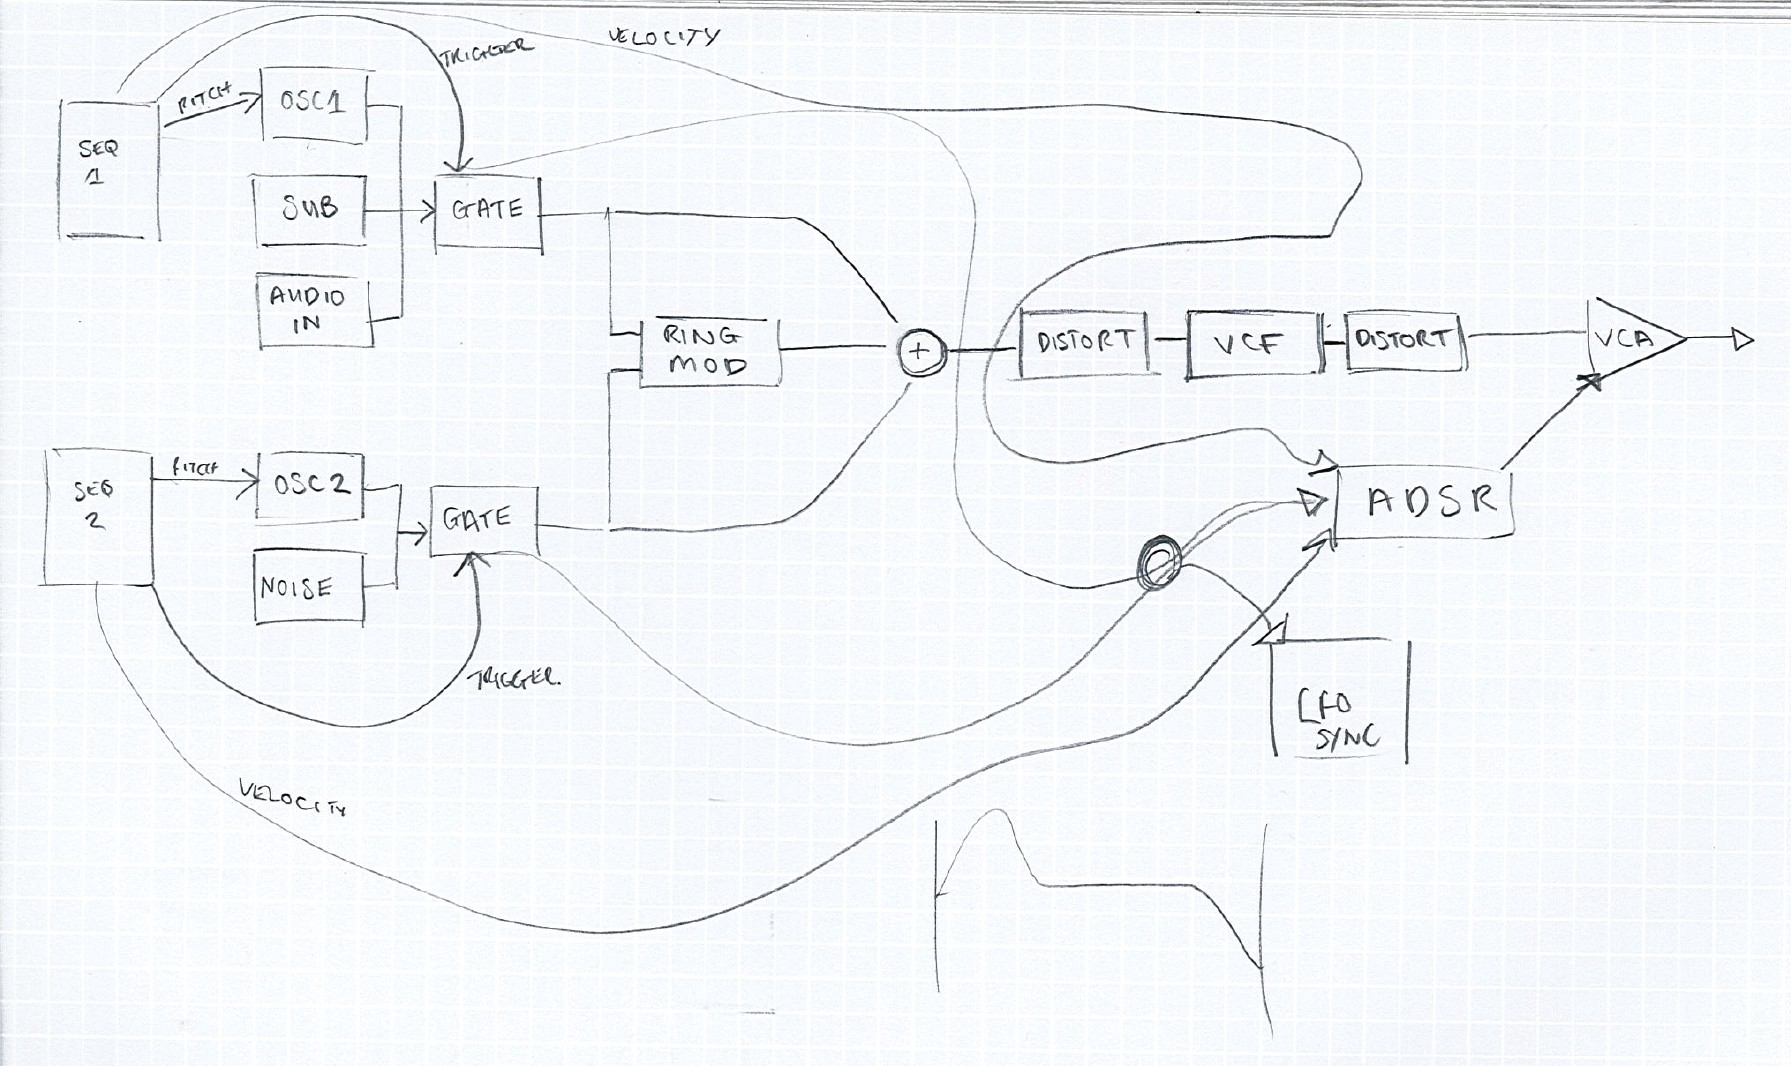 Circuit Mono Station Behind The Scenes Novation Notes Medium Schematic Of A Sketch From Alex Lucas Notebook Showing Basic